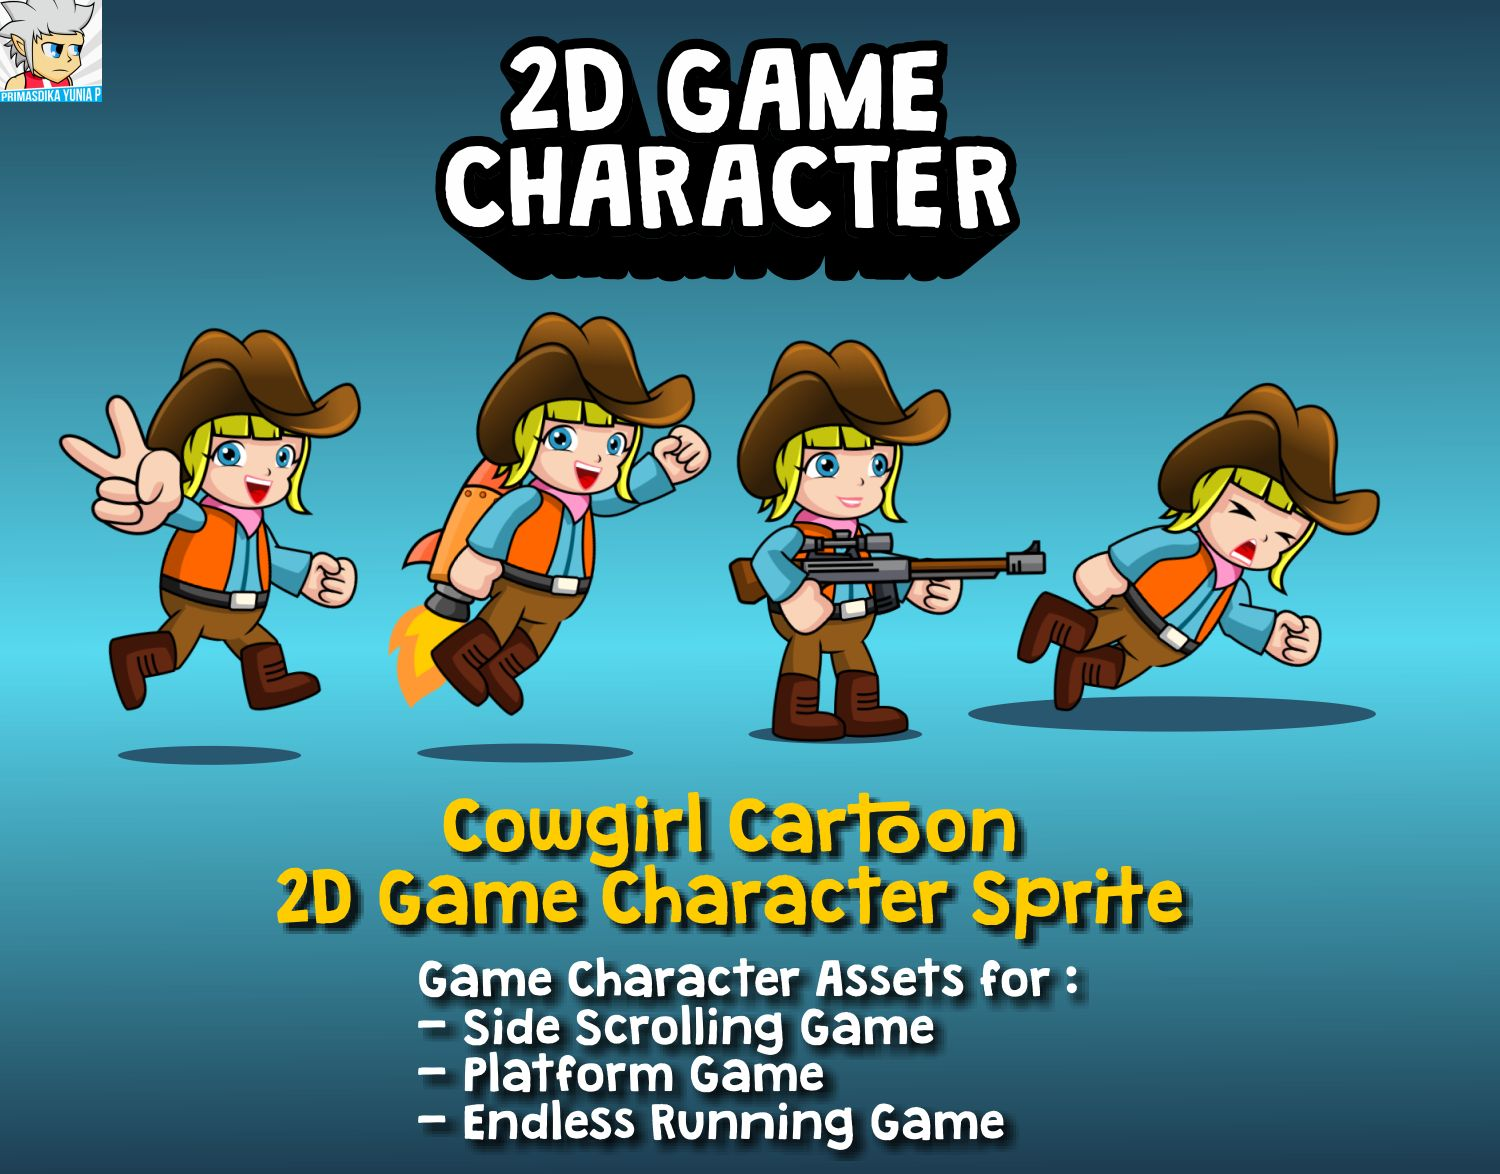 Cowgirl Cartoon 2D Game Character Sprite Screenshot 1